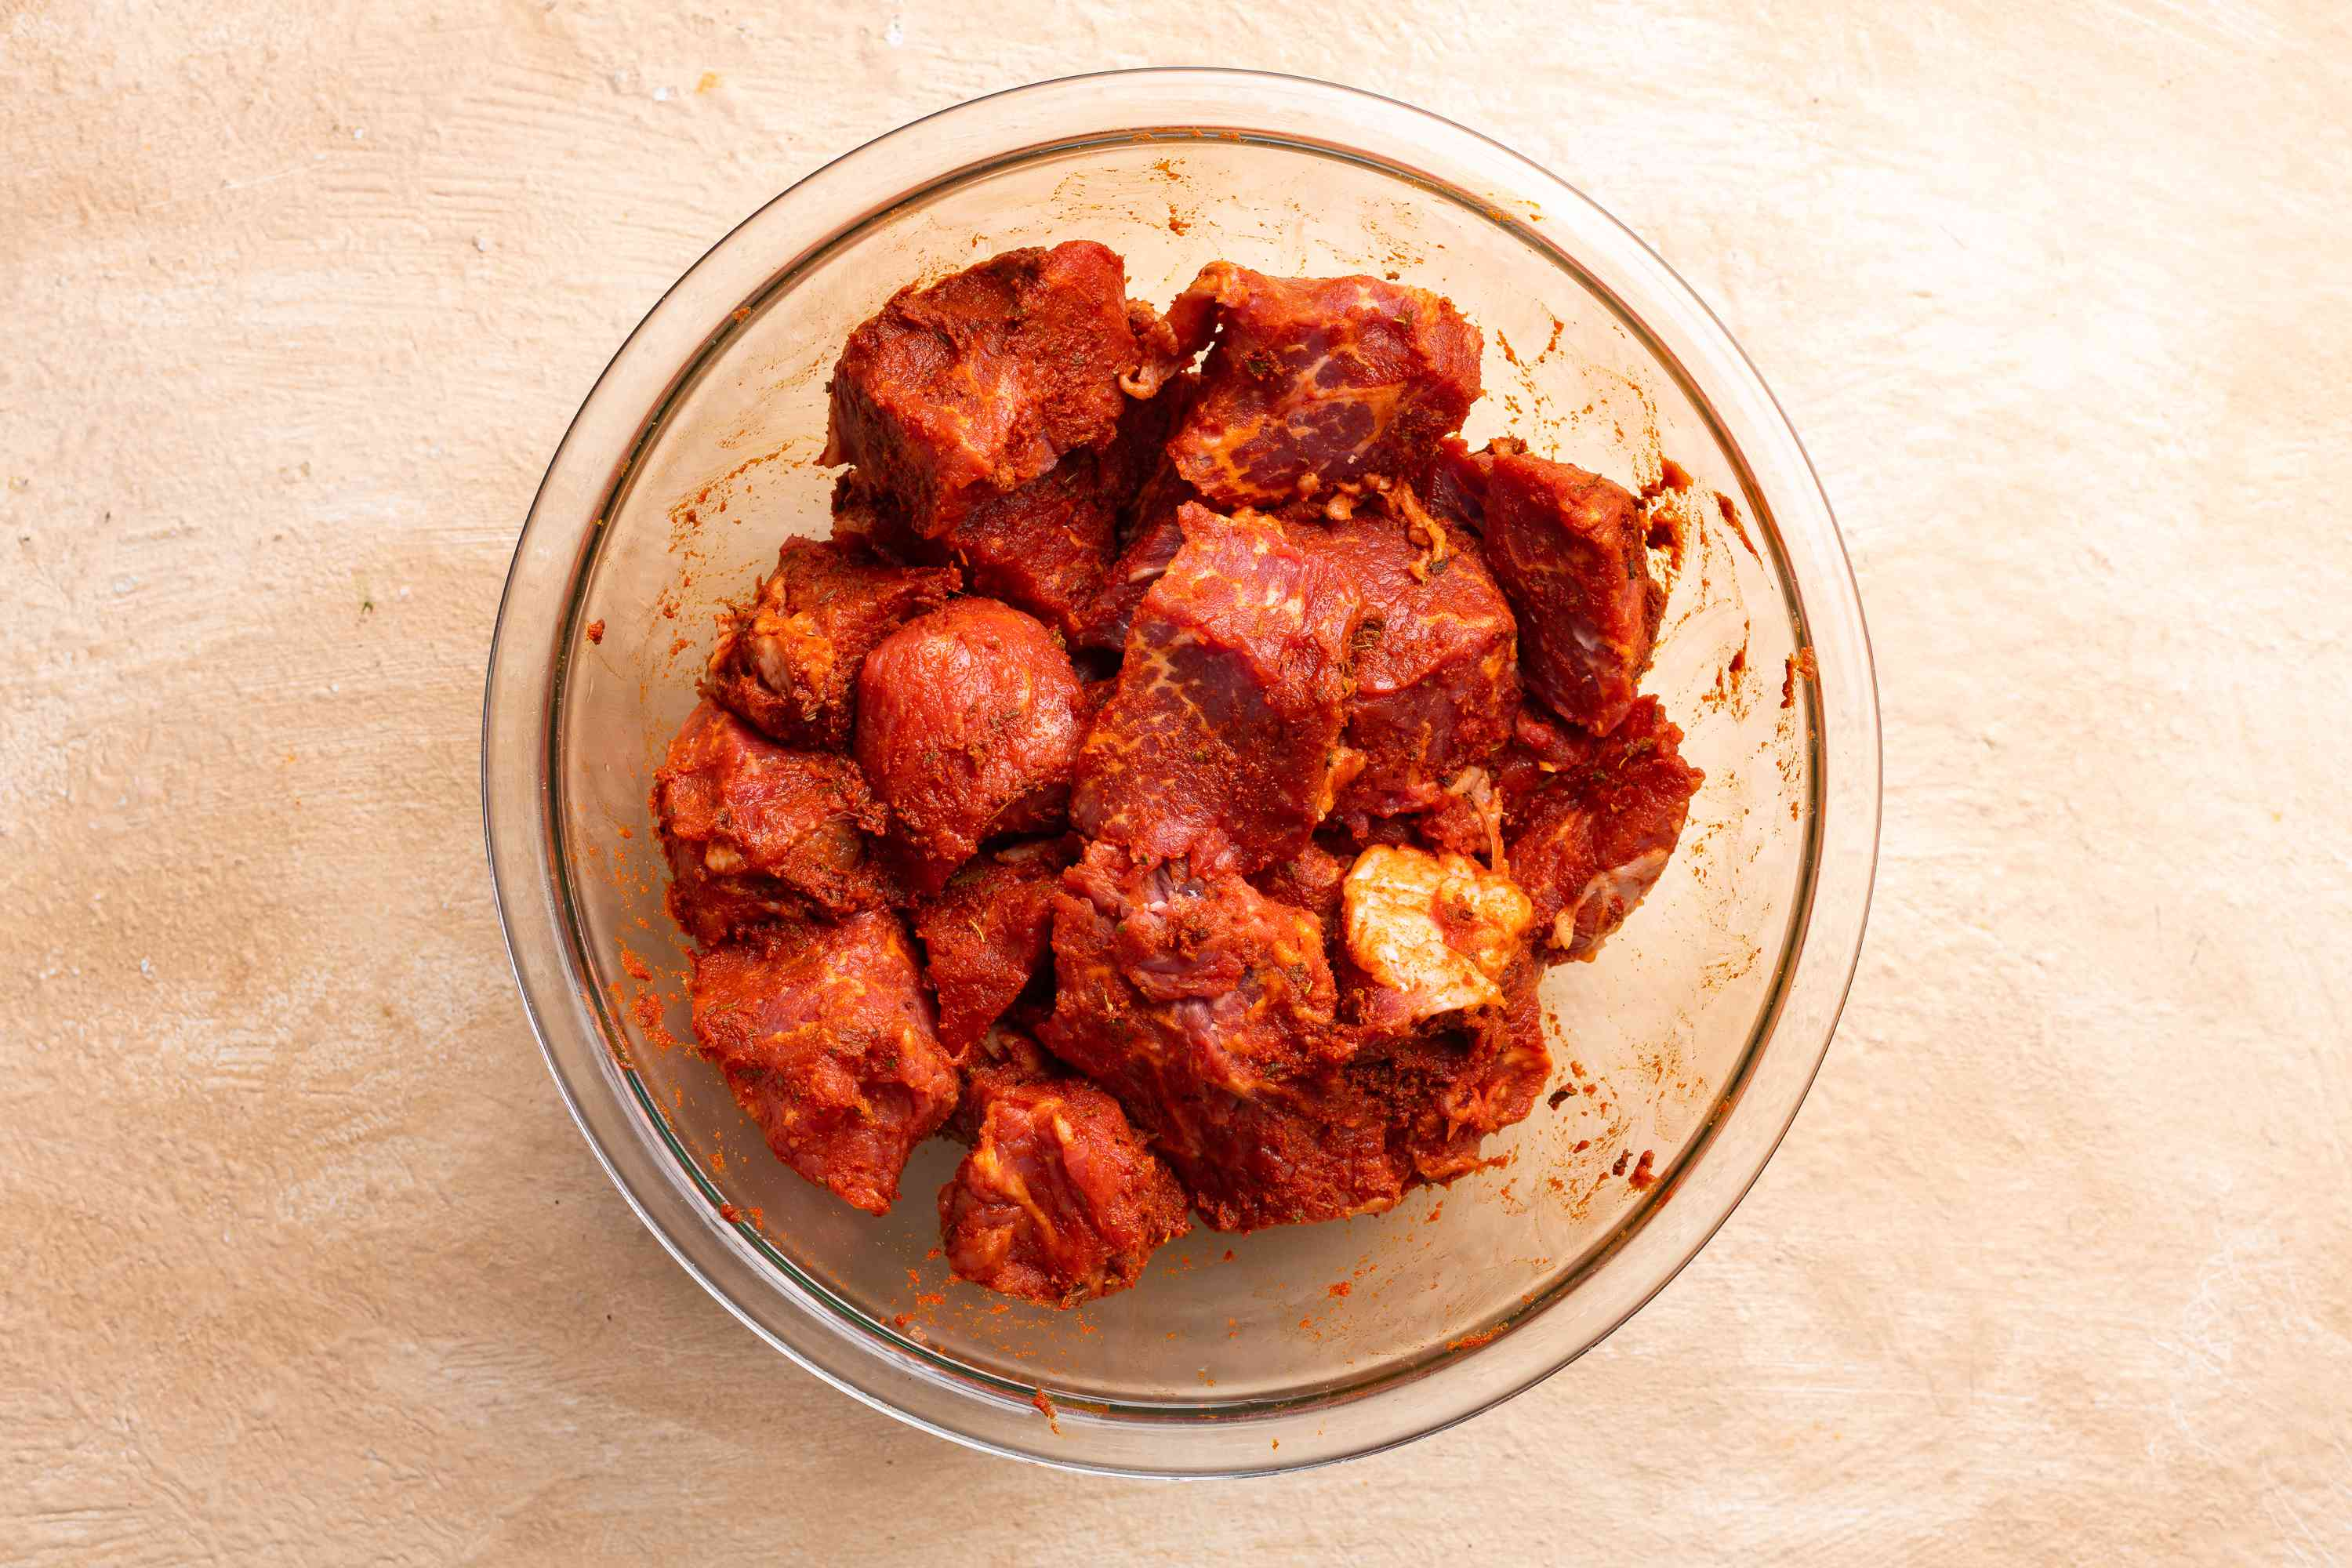 beef with marinade in a bowl